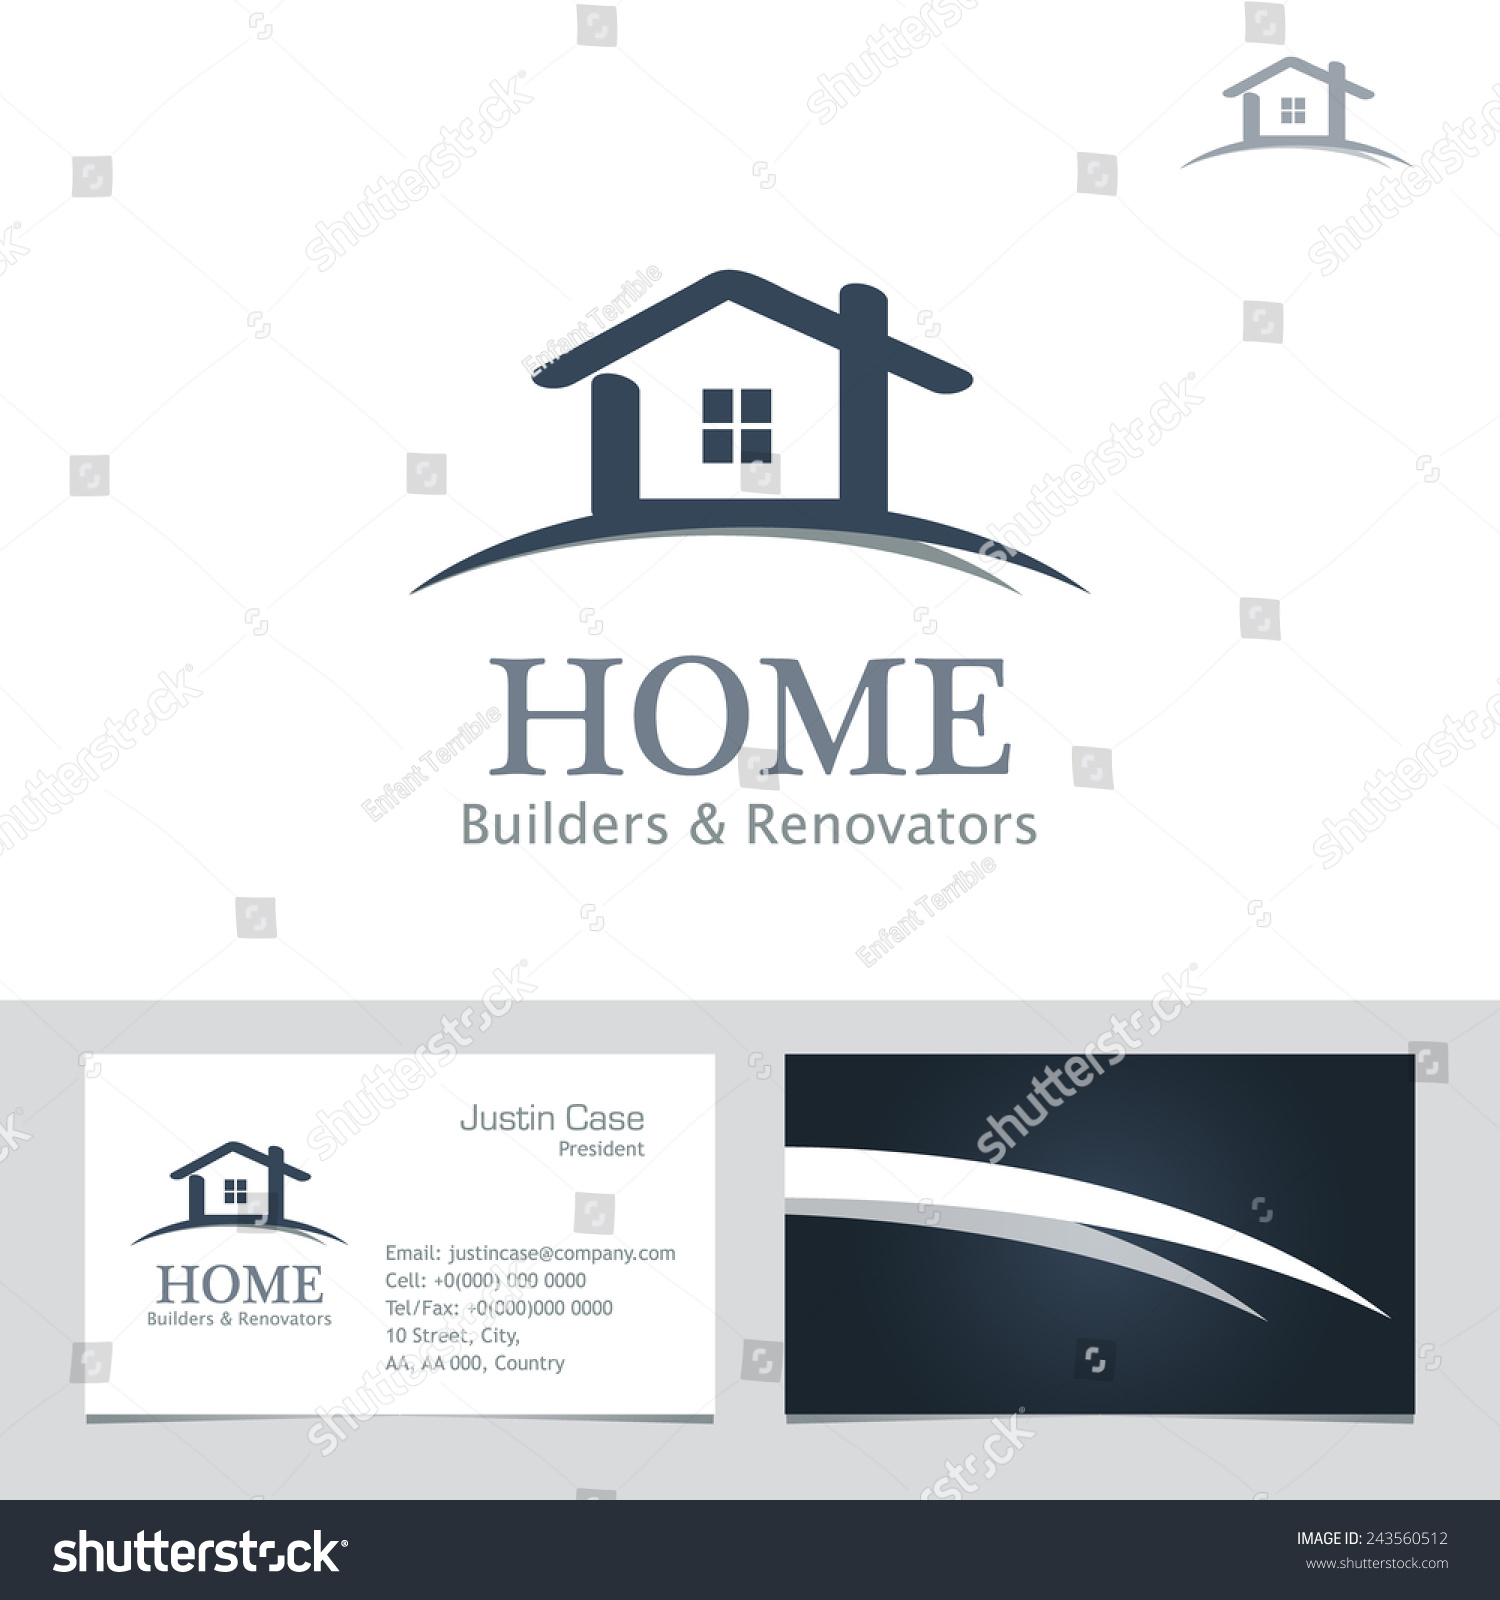 Real estate business sign business card vector template for Home builder company